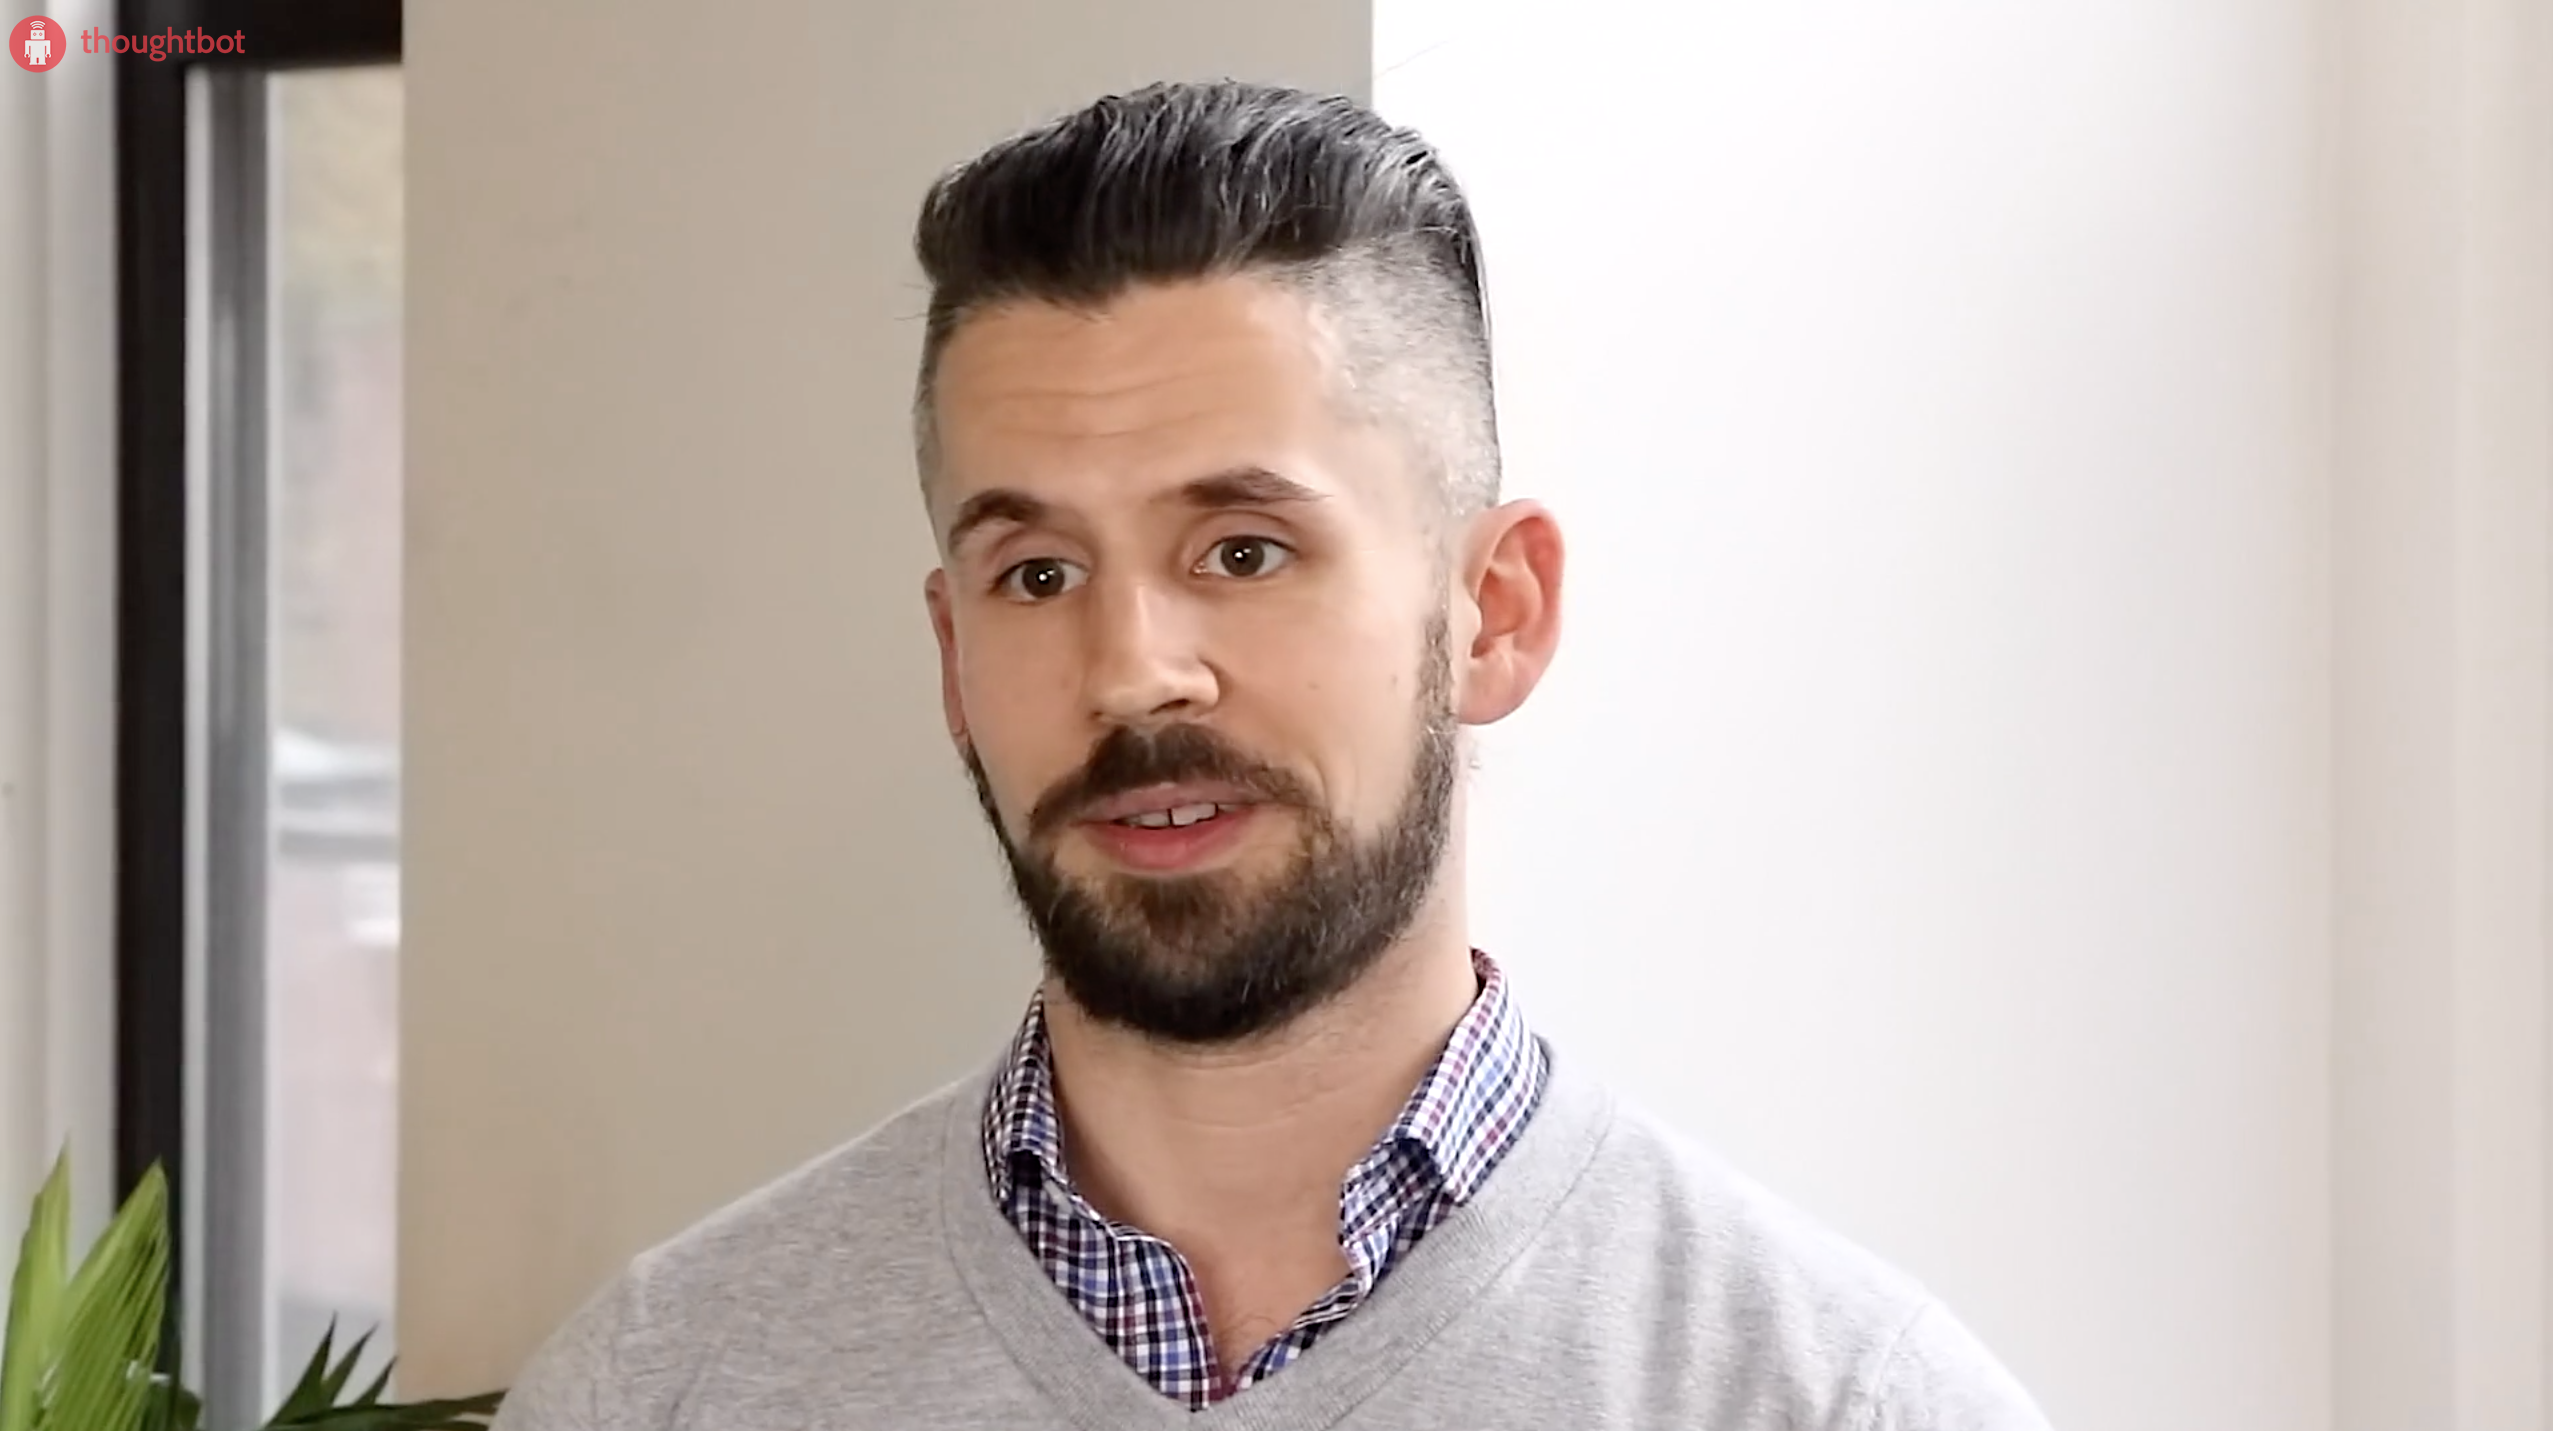 Managing Director Josh Clayton explains the value of honesty when working with clients